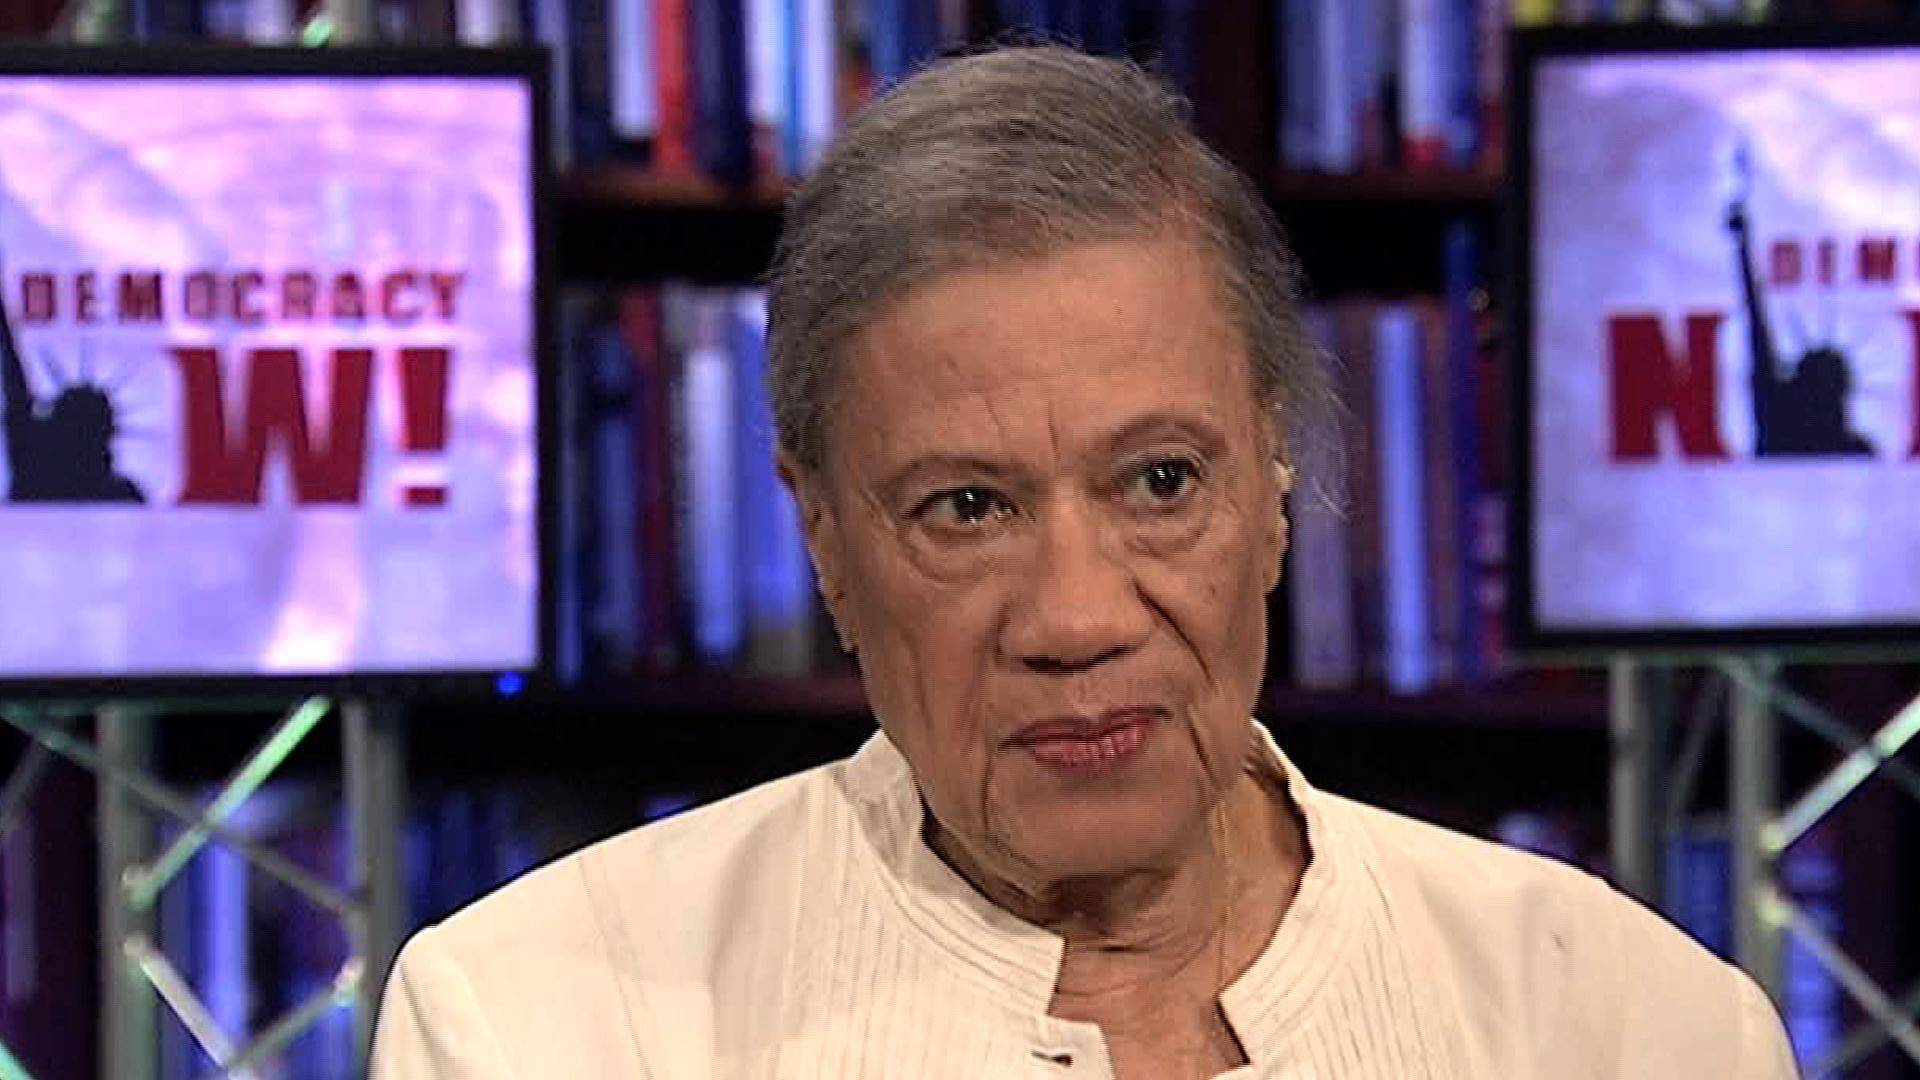 Civil Rights Pioneer Gloria Richardson 91 On How Women